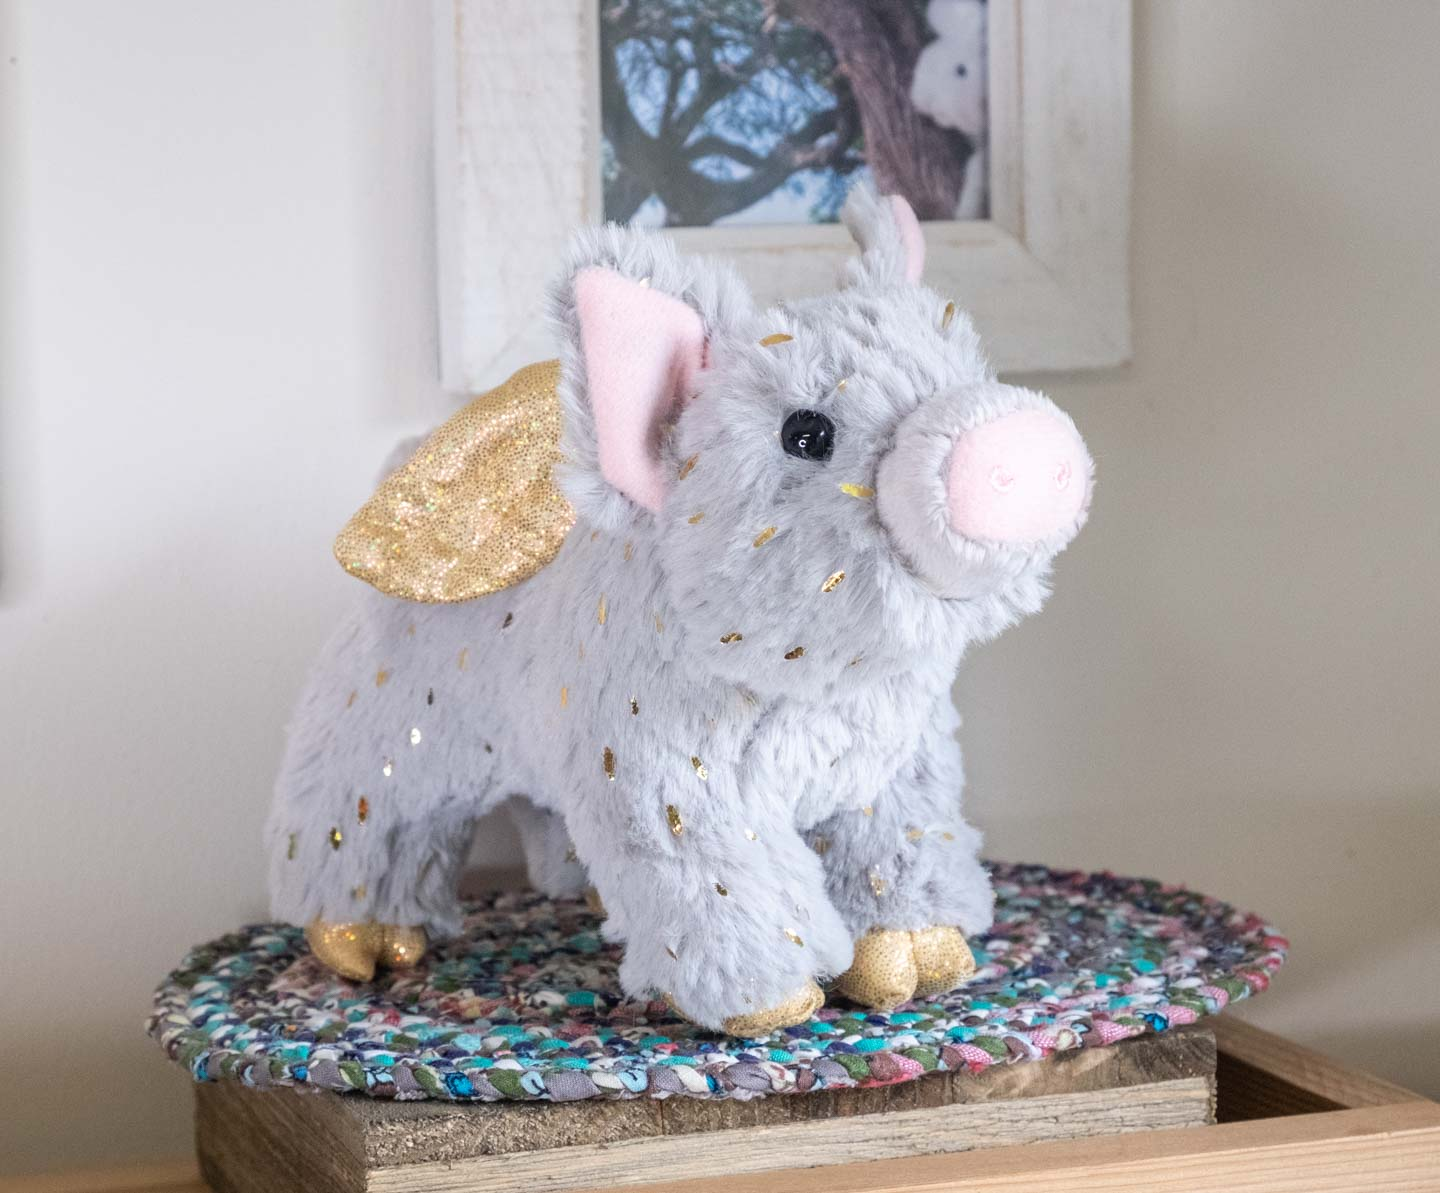 Gray stuffed pig with gold wings and gold hooves